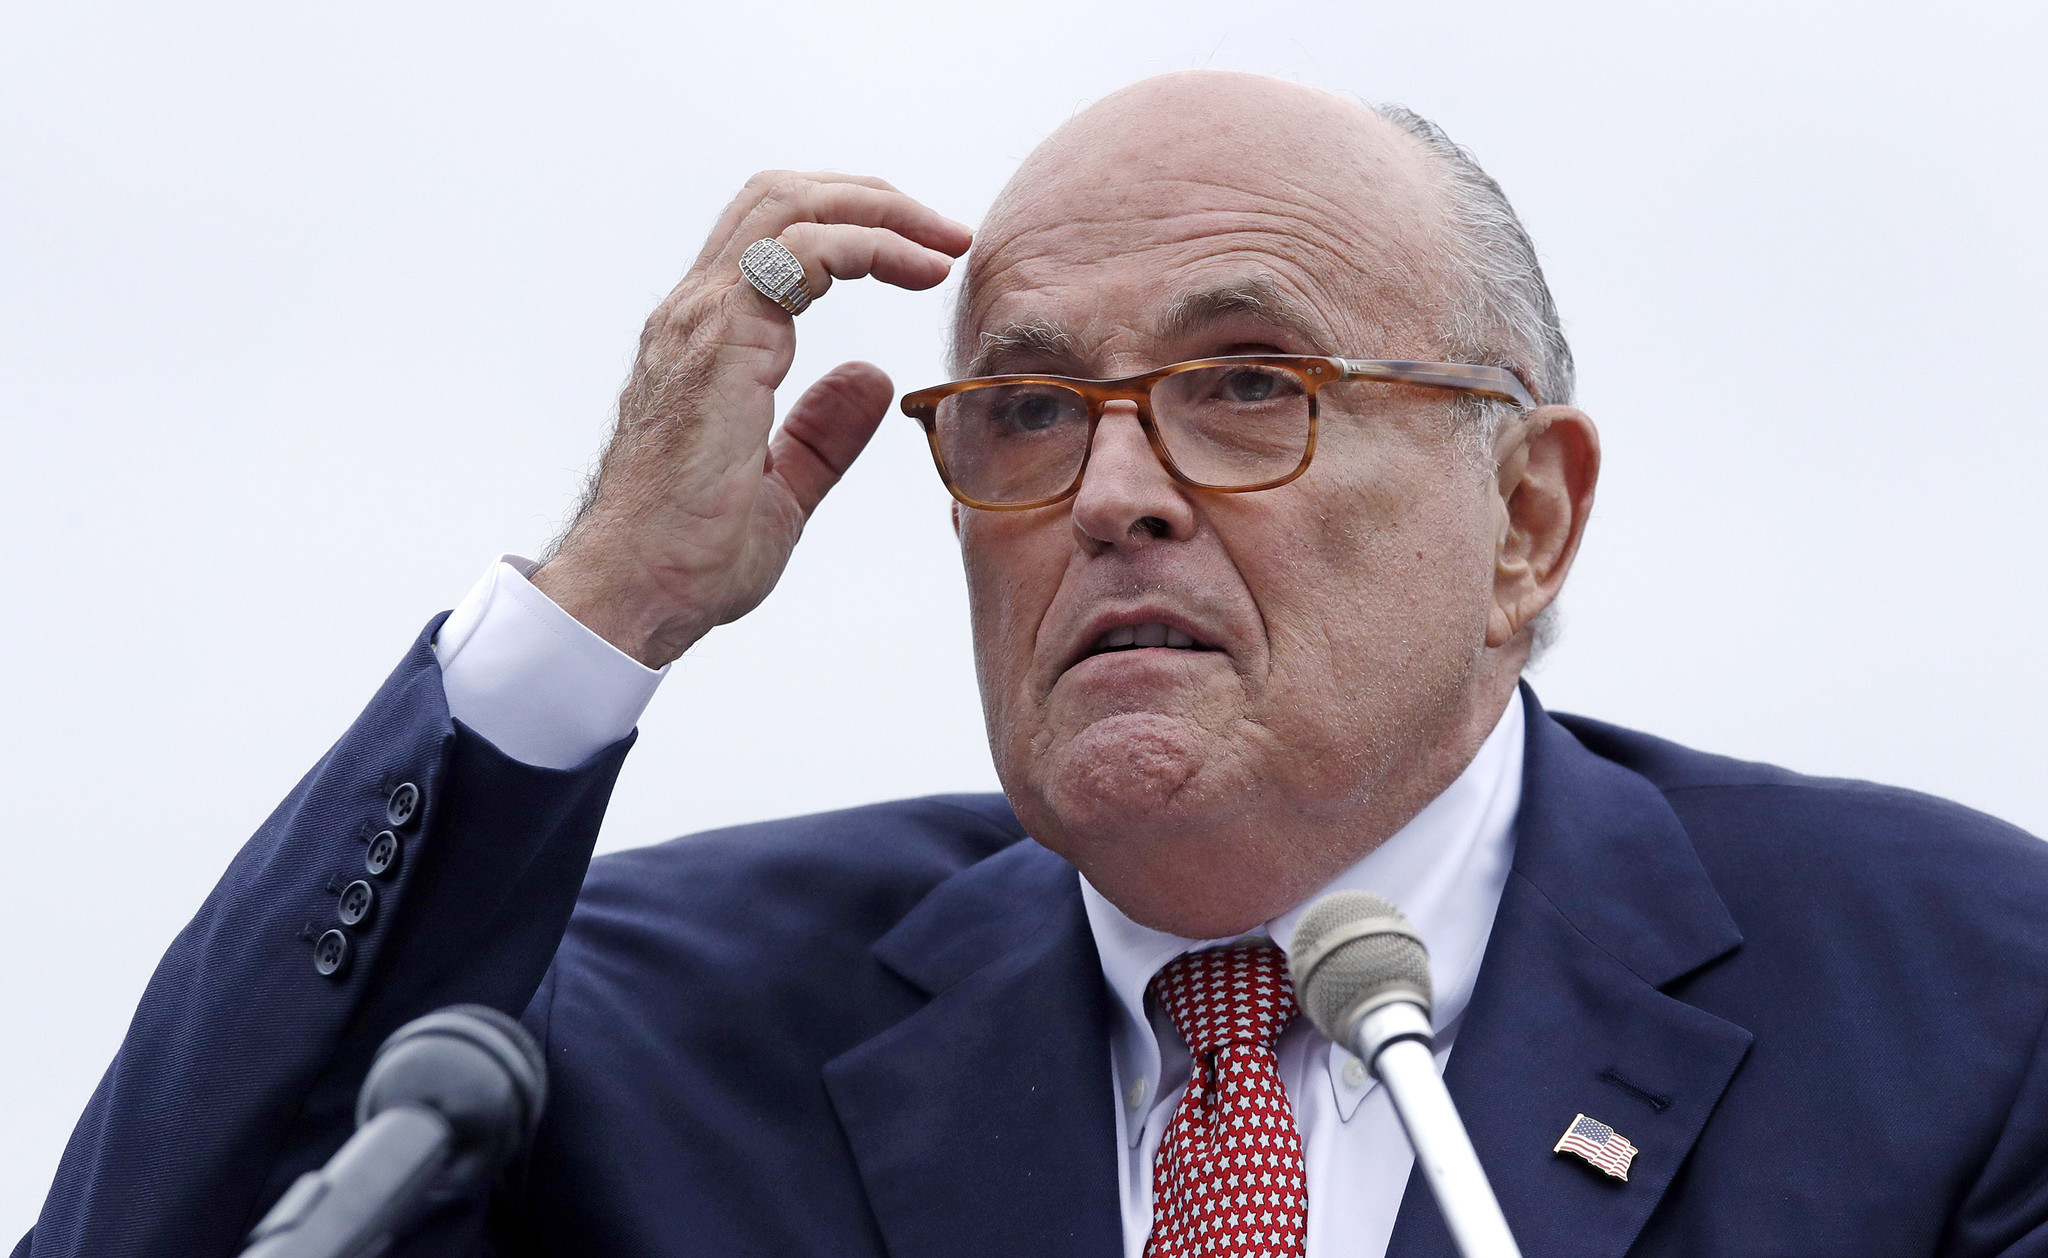 Giuliani furious Democrats want testimony from Bolton but not him: 'They are afraid of my physical presence'